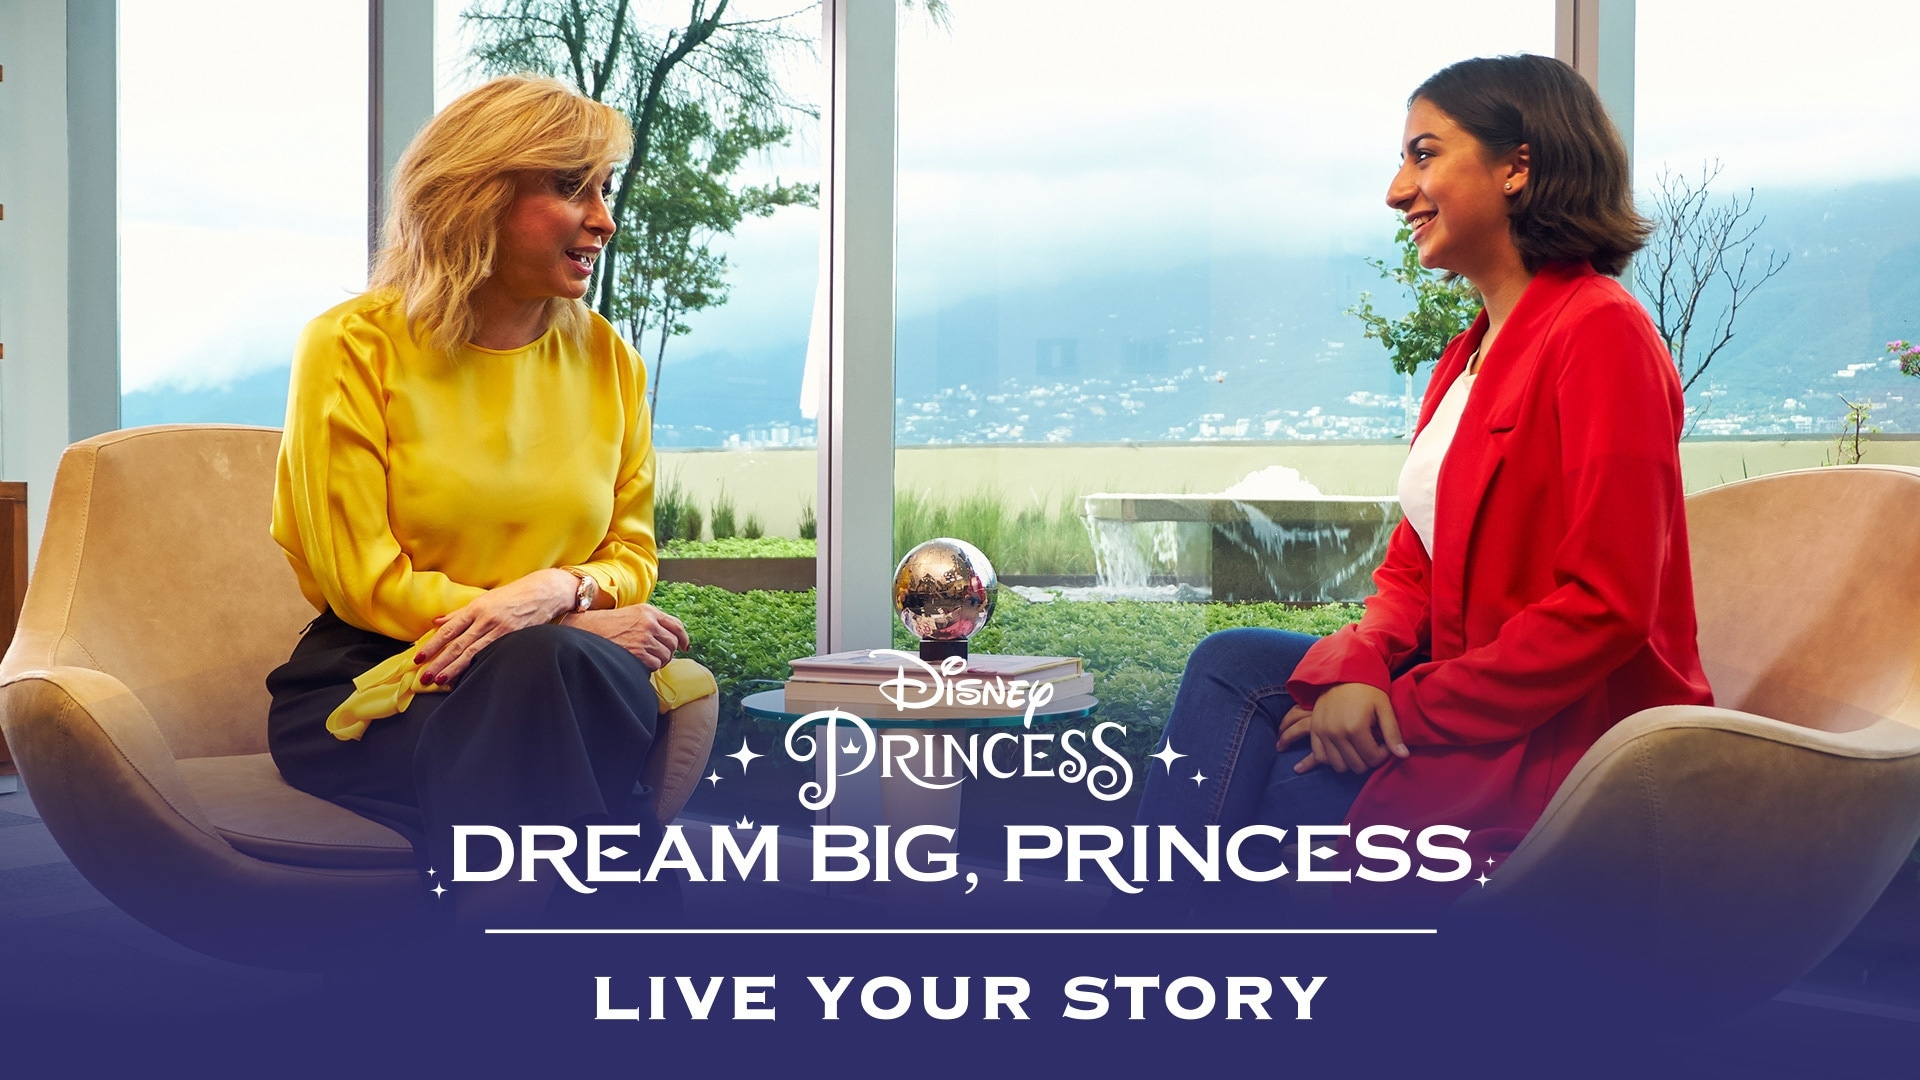 Dream Big, Princess - Eloisa Meets Blanca Treviño | Disney